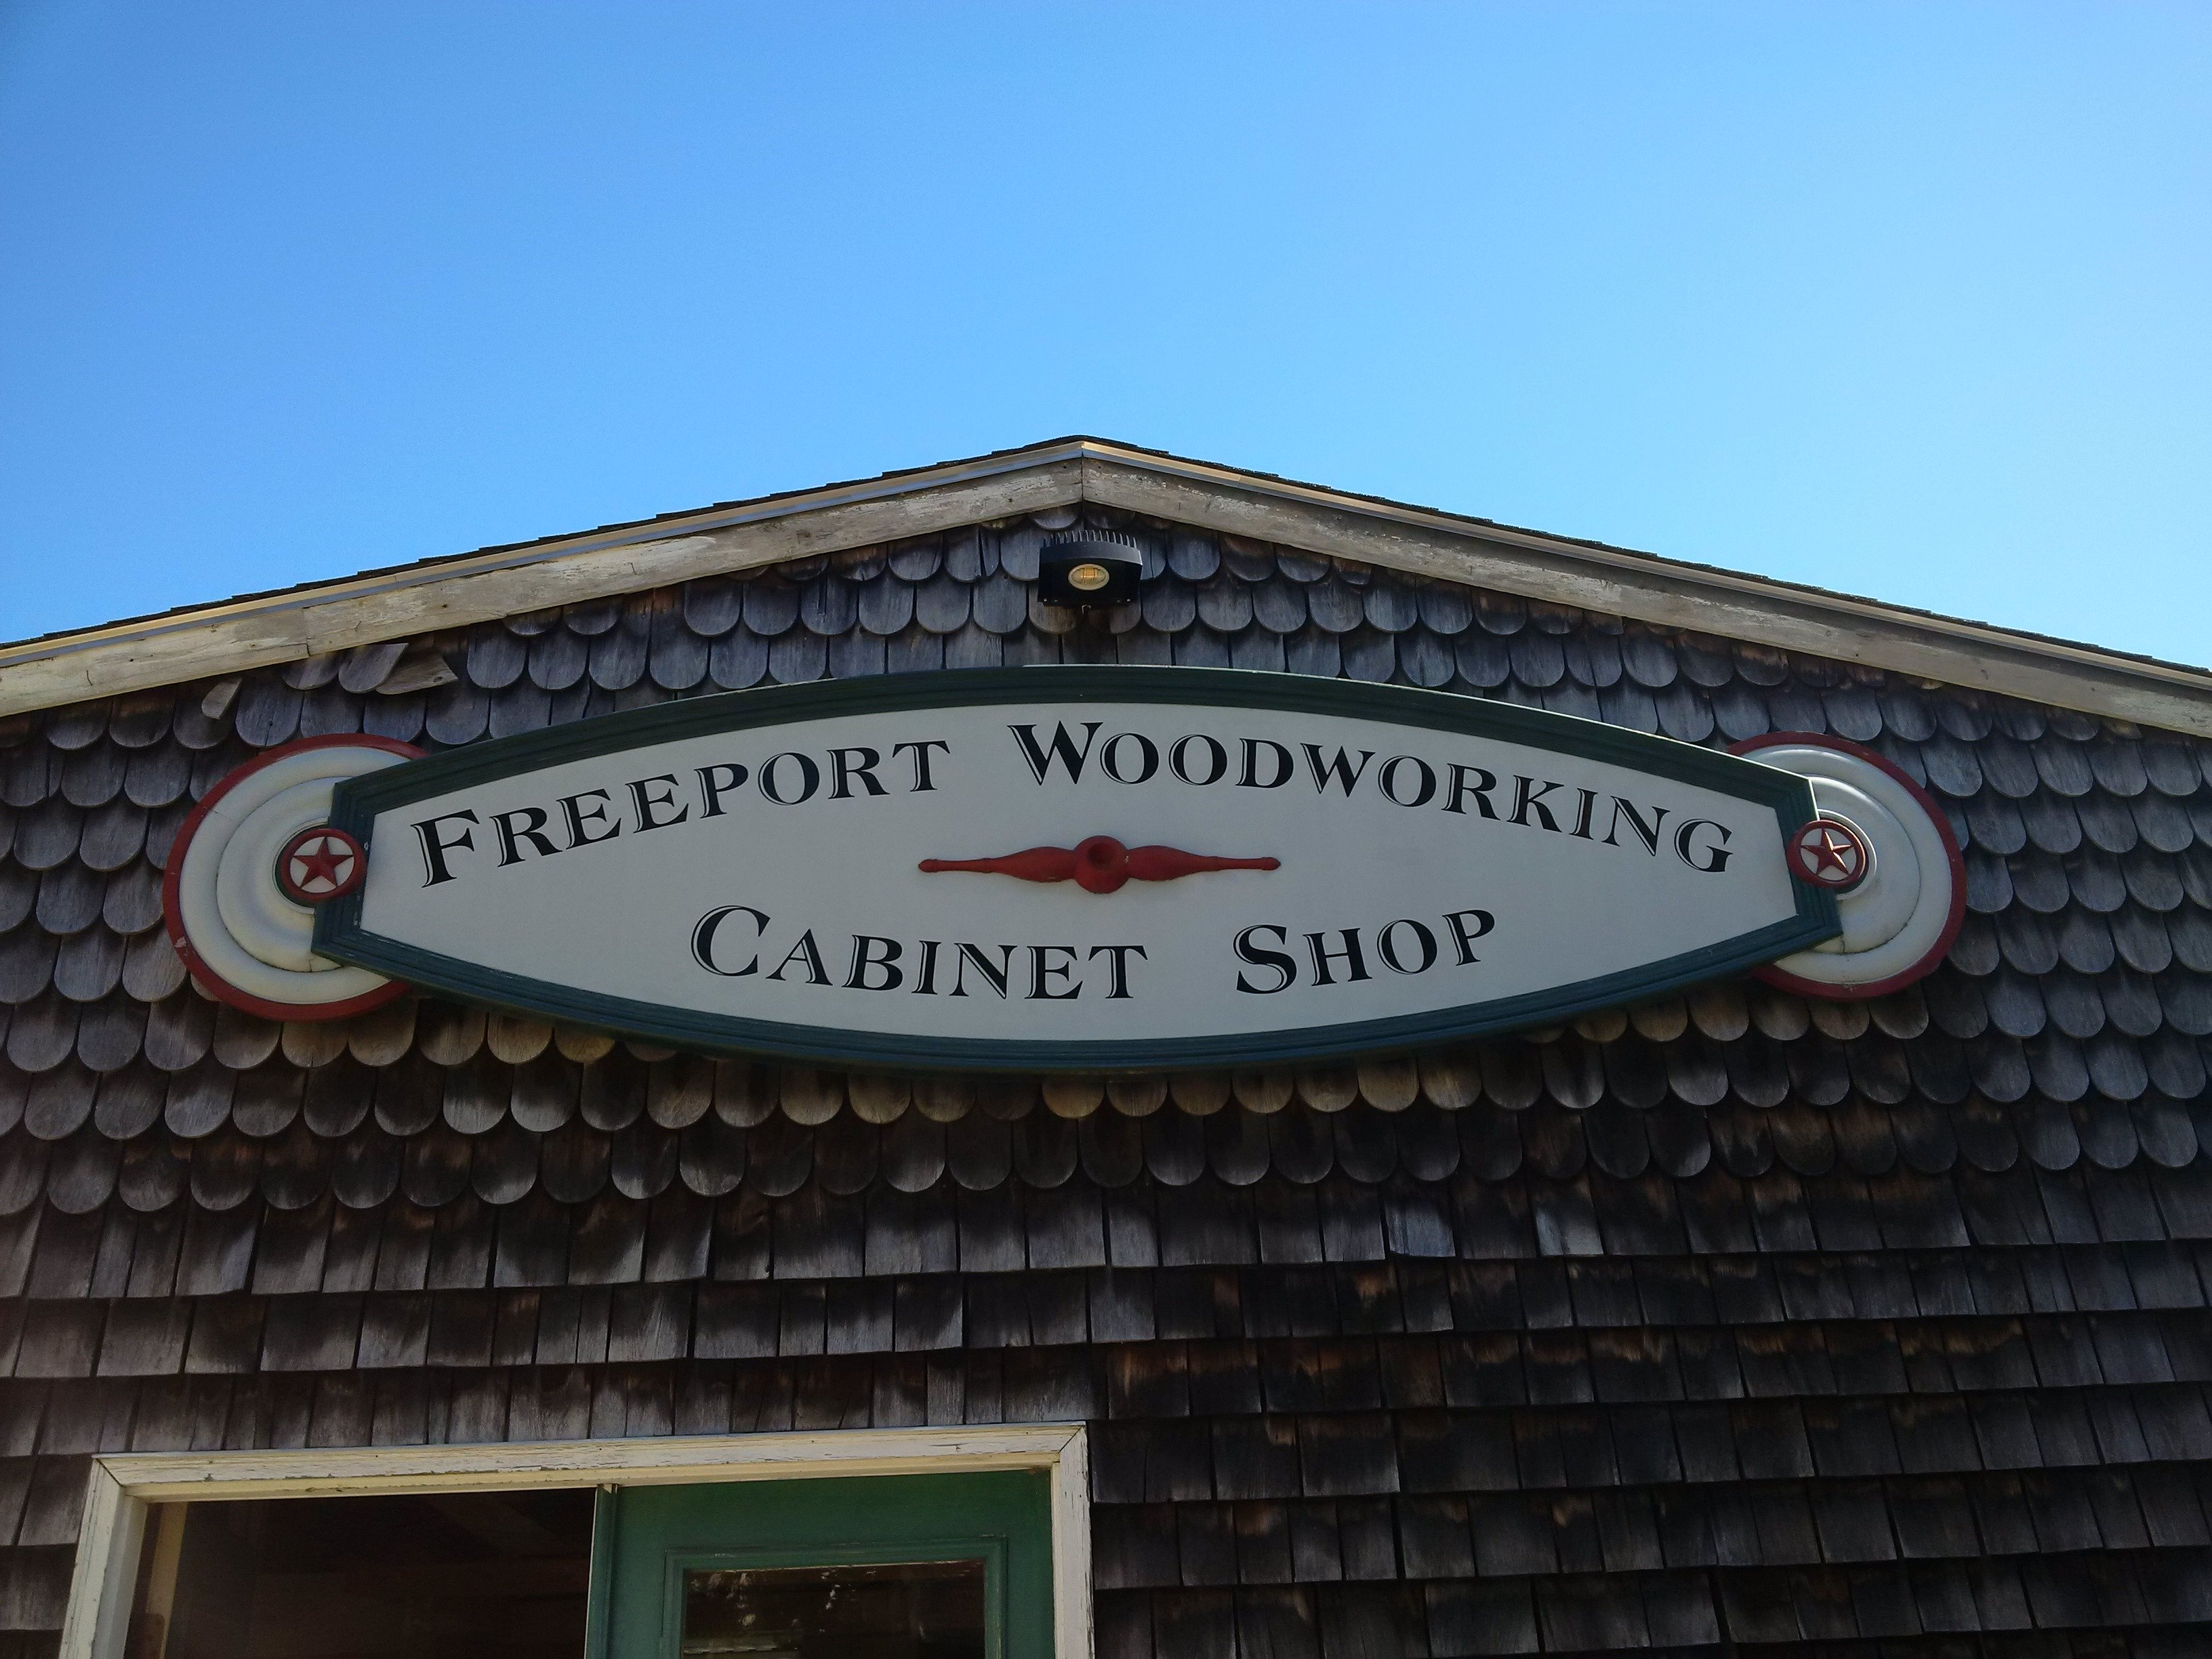 Freeport Woodworking Entrance